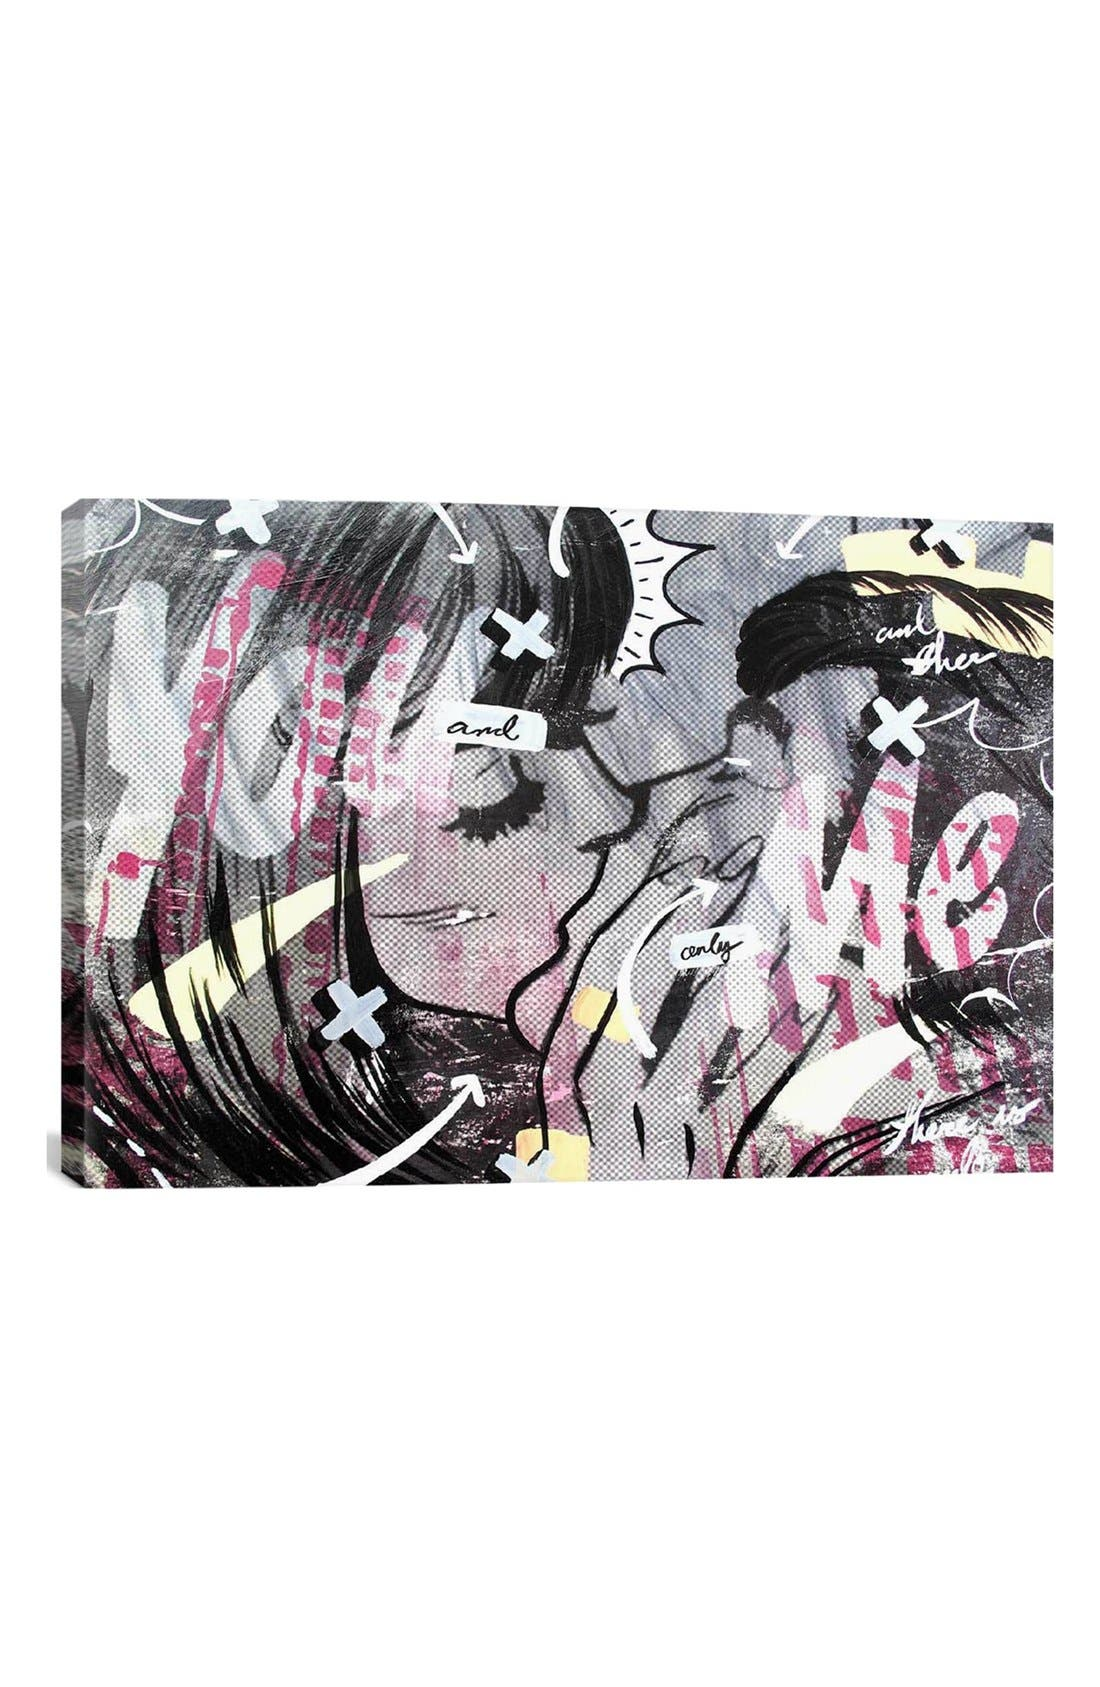 Alternate Image 1 Selected - iCanvas 'And Only' Giclée Print Canvas Art